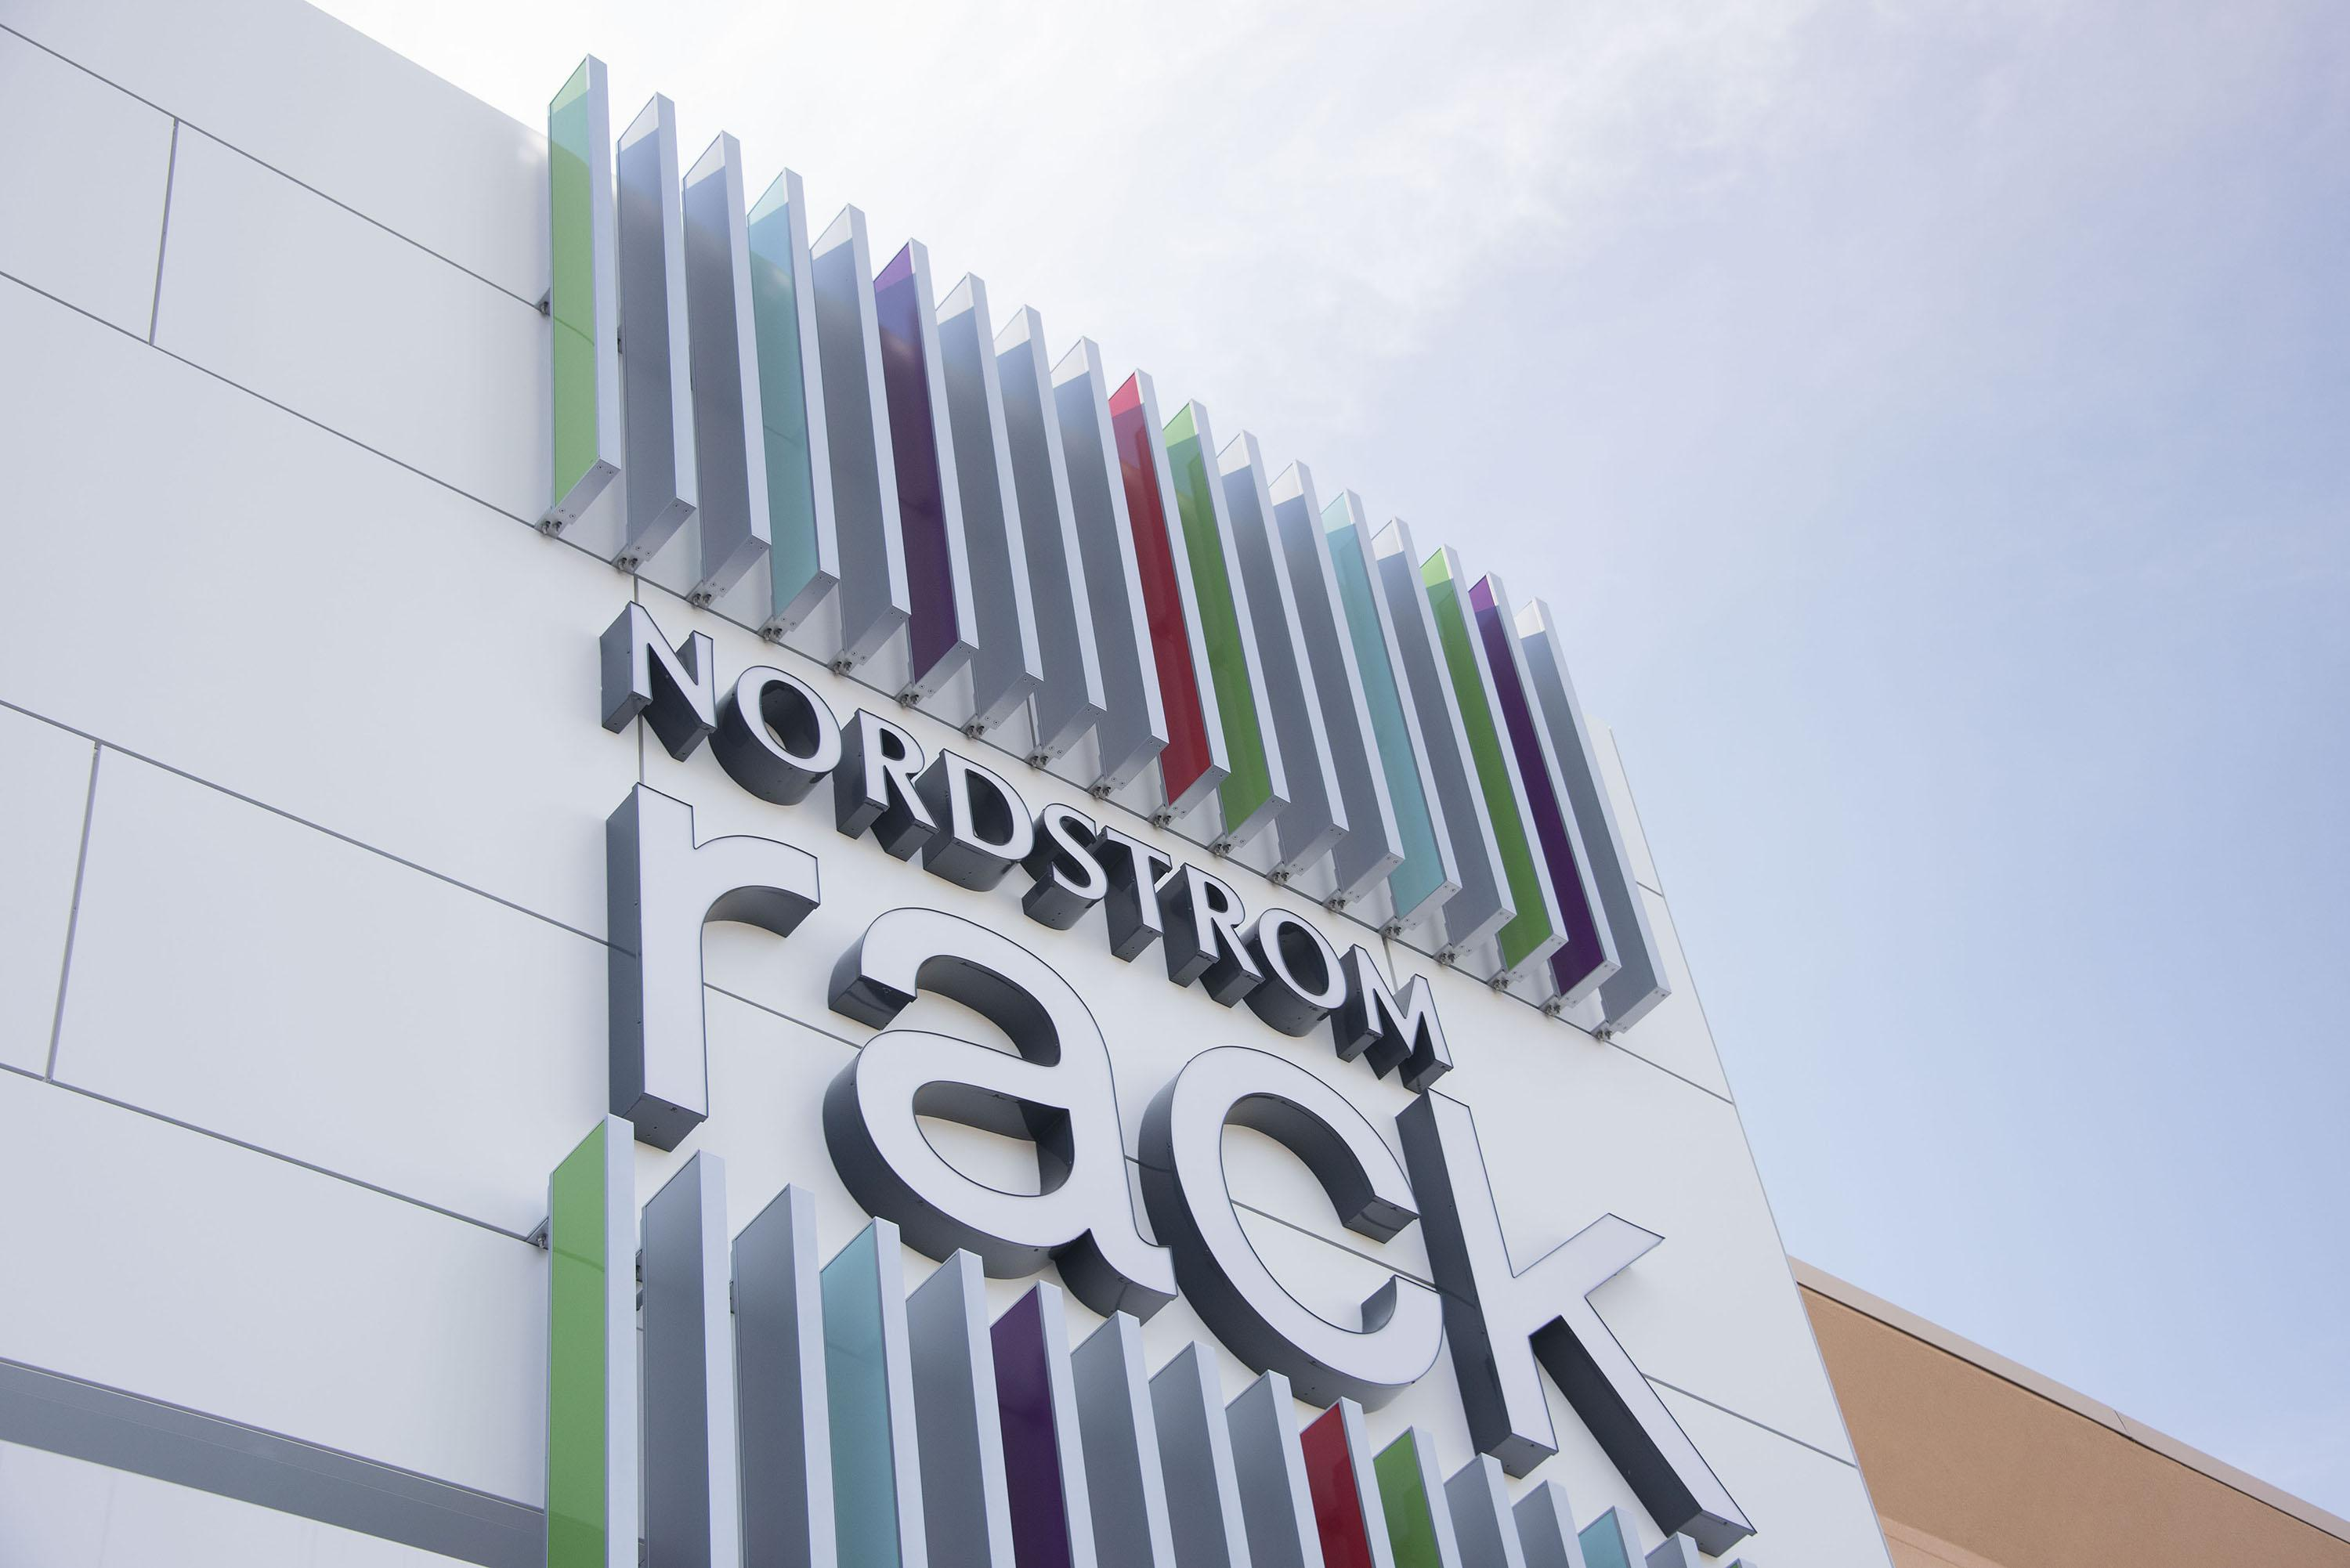 Nordstrom Rack Wrongly Accuses Three Black Teenagers Of Theft